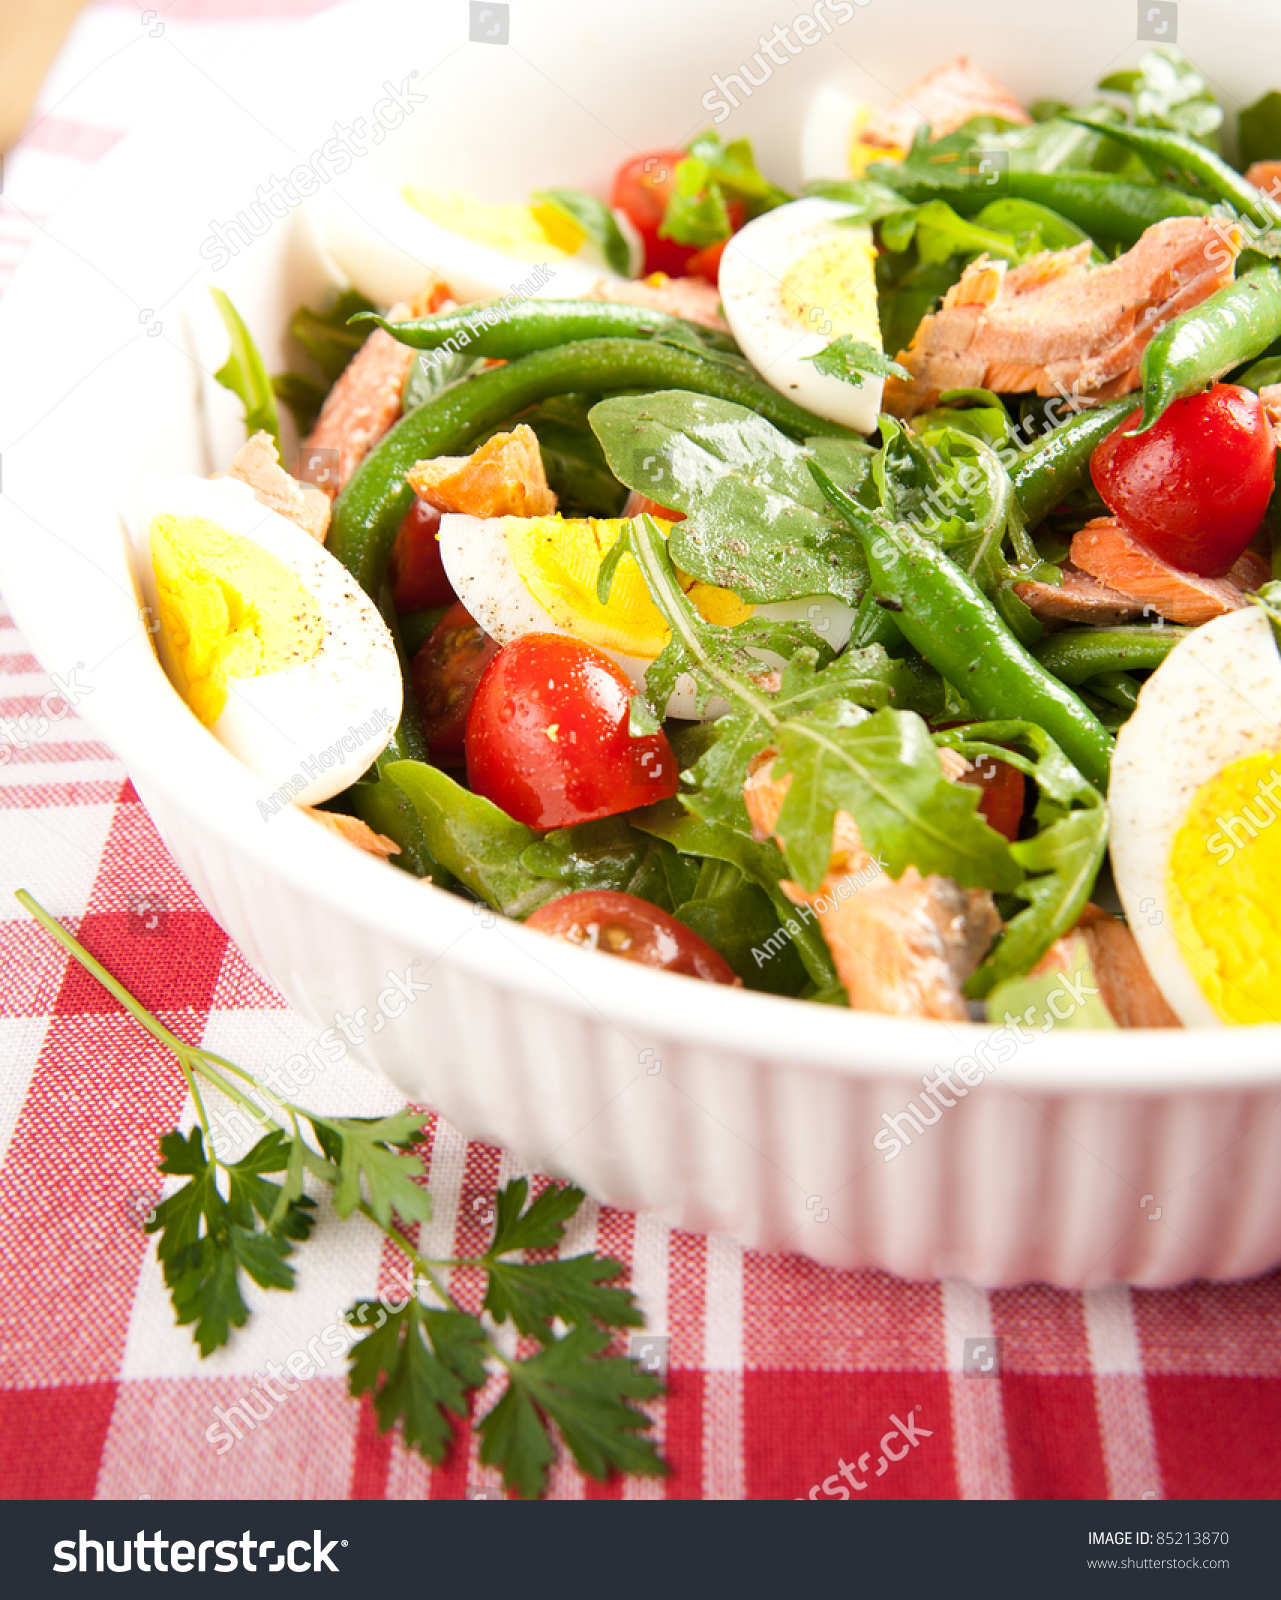 Paleo diet style green bean salad stock photo 85213870 for Style green